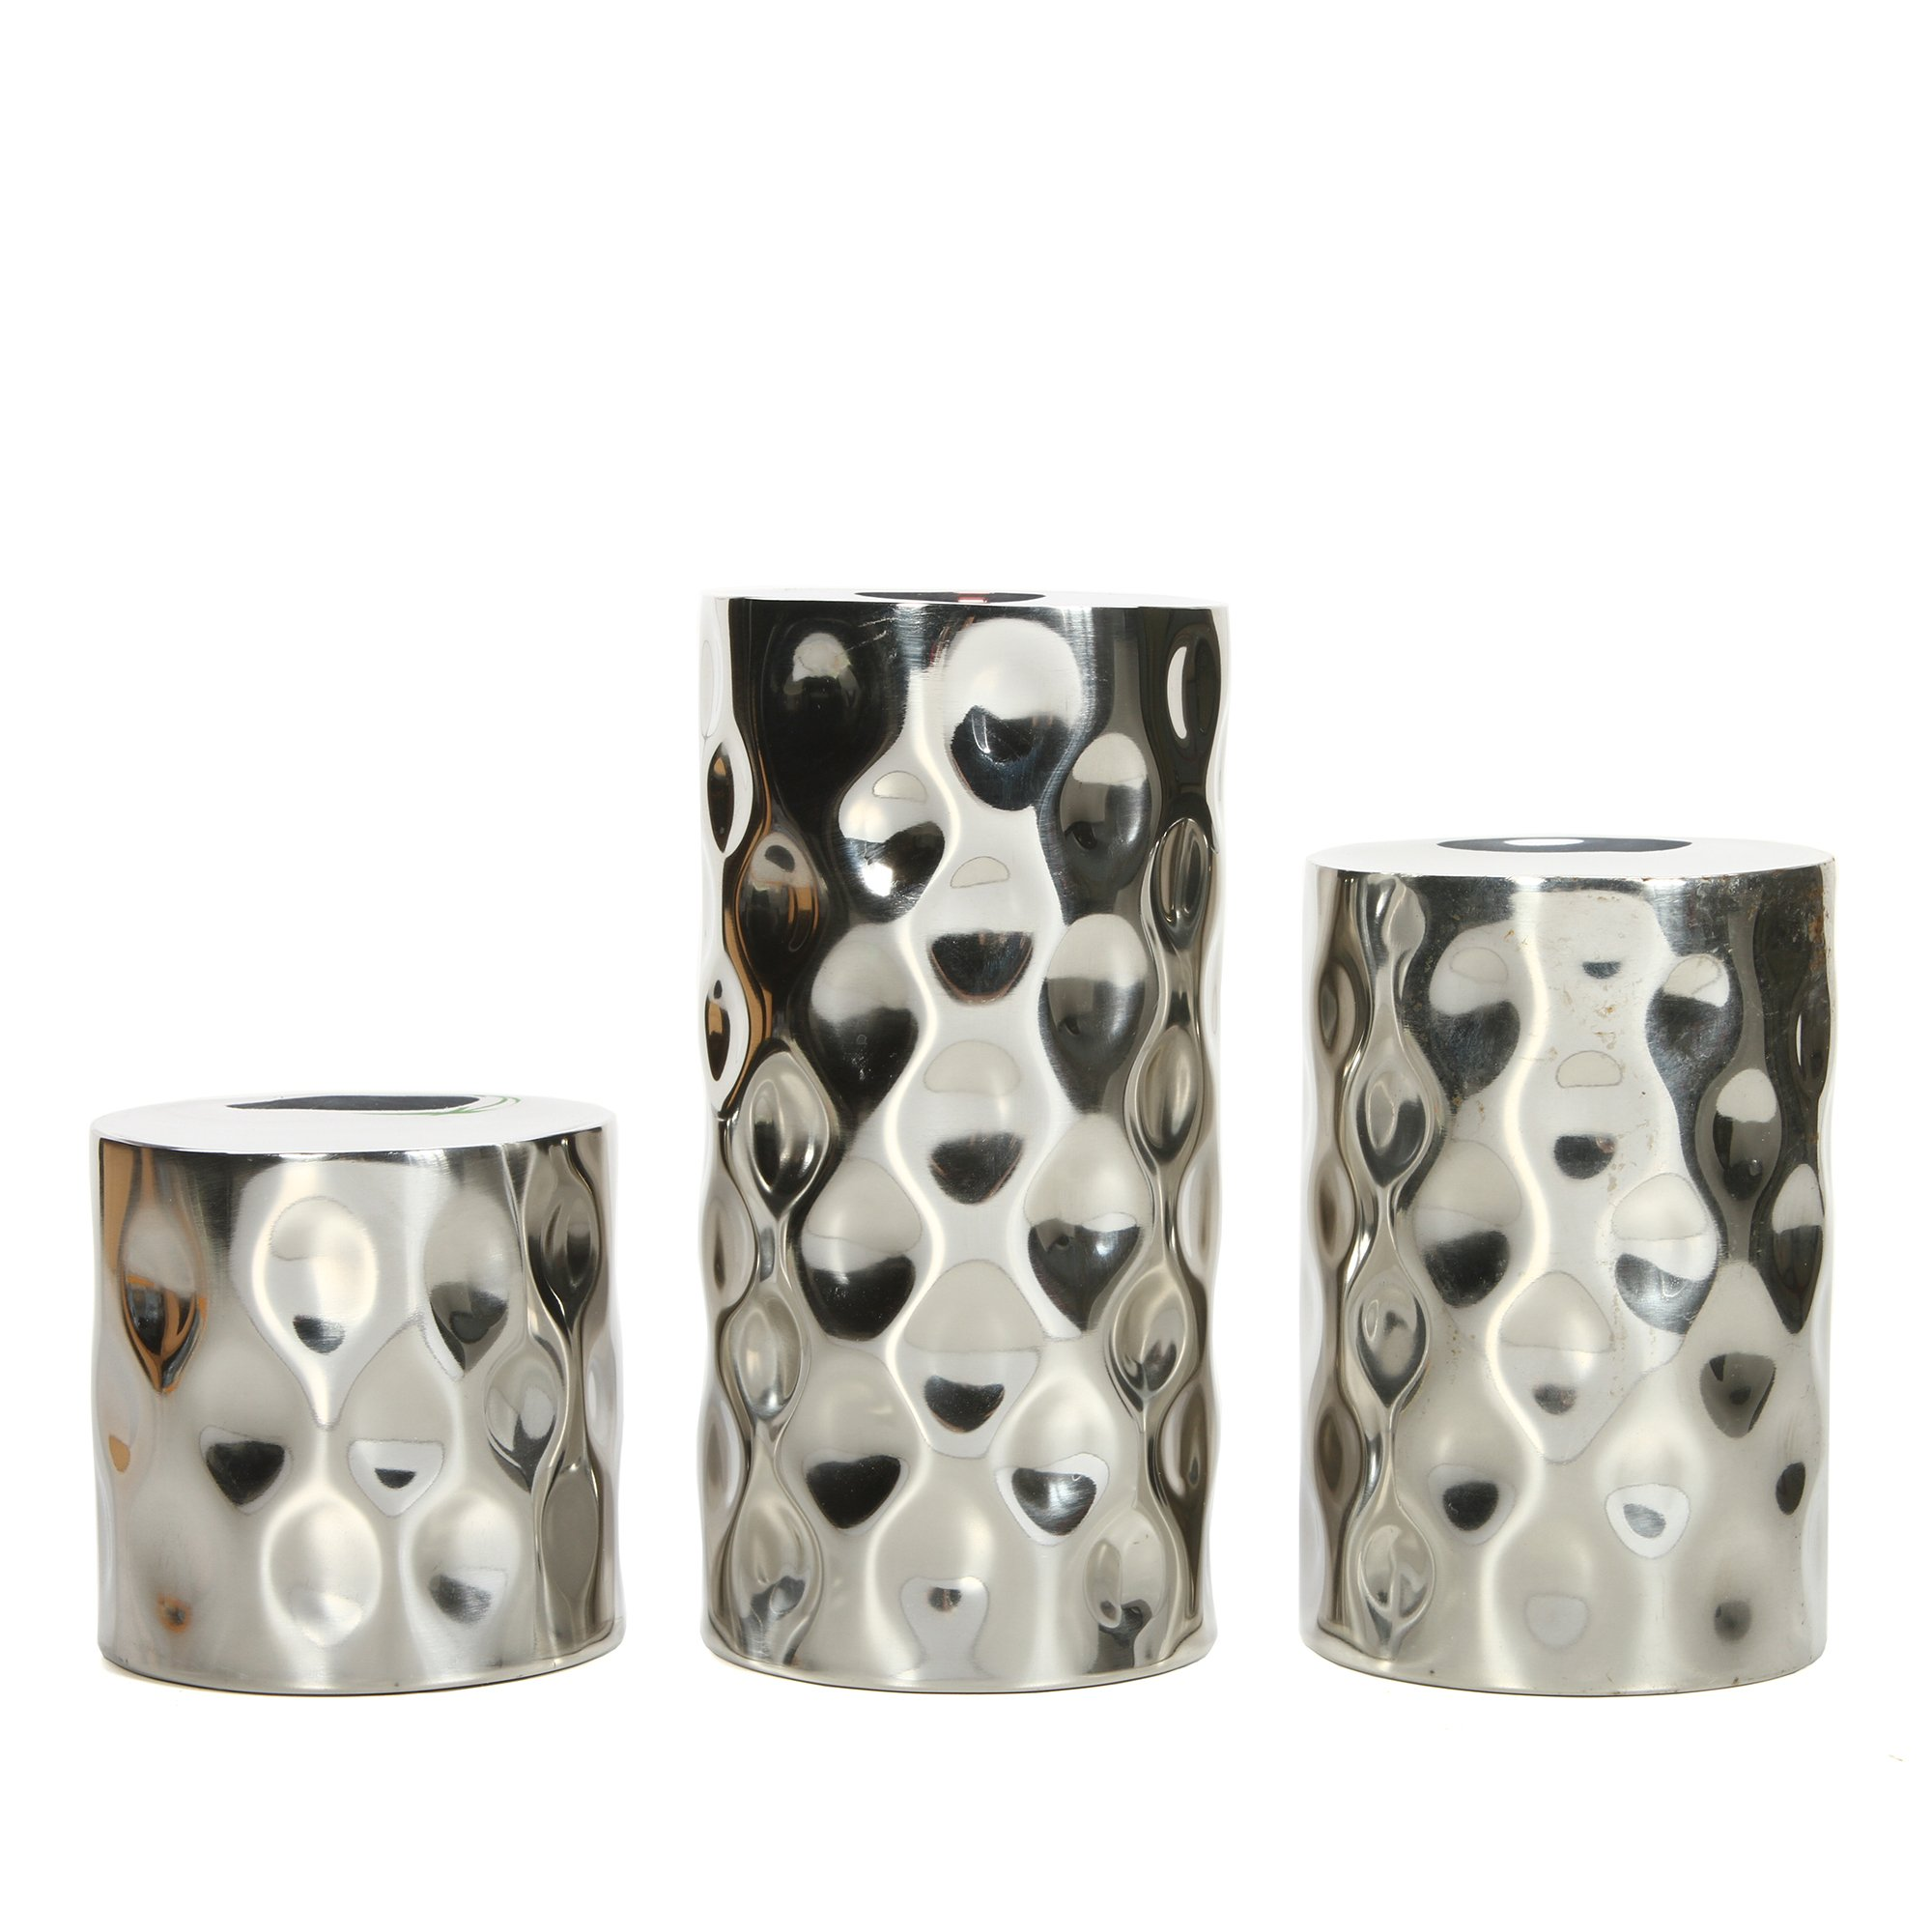 Hosley Silver Metallic Finish Pillar Holders, 3'' , 5'', 7'' High, Pebble Pattern. Ideal GIFT for Wedding, Party, Home, SPA, Aromatherapy, Reiki, Votive, Tea Light, Candle Garden O3